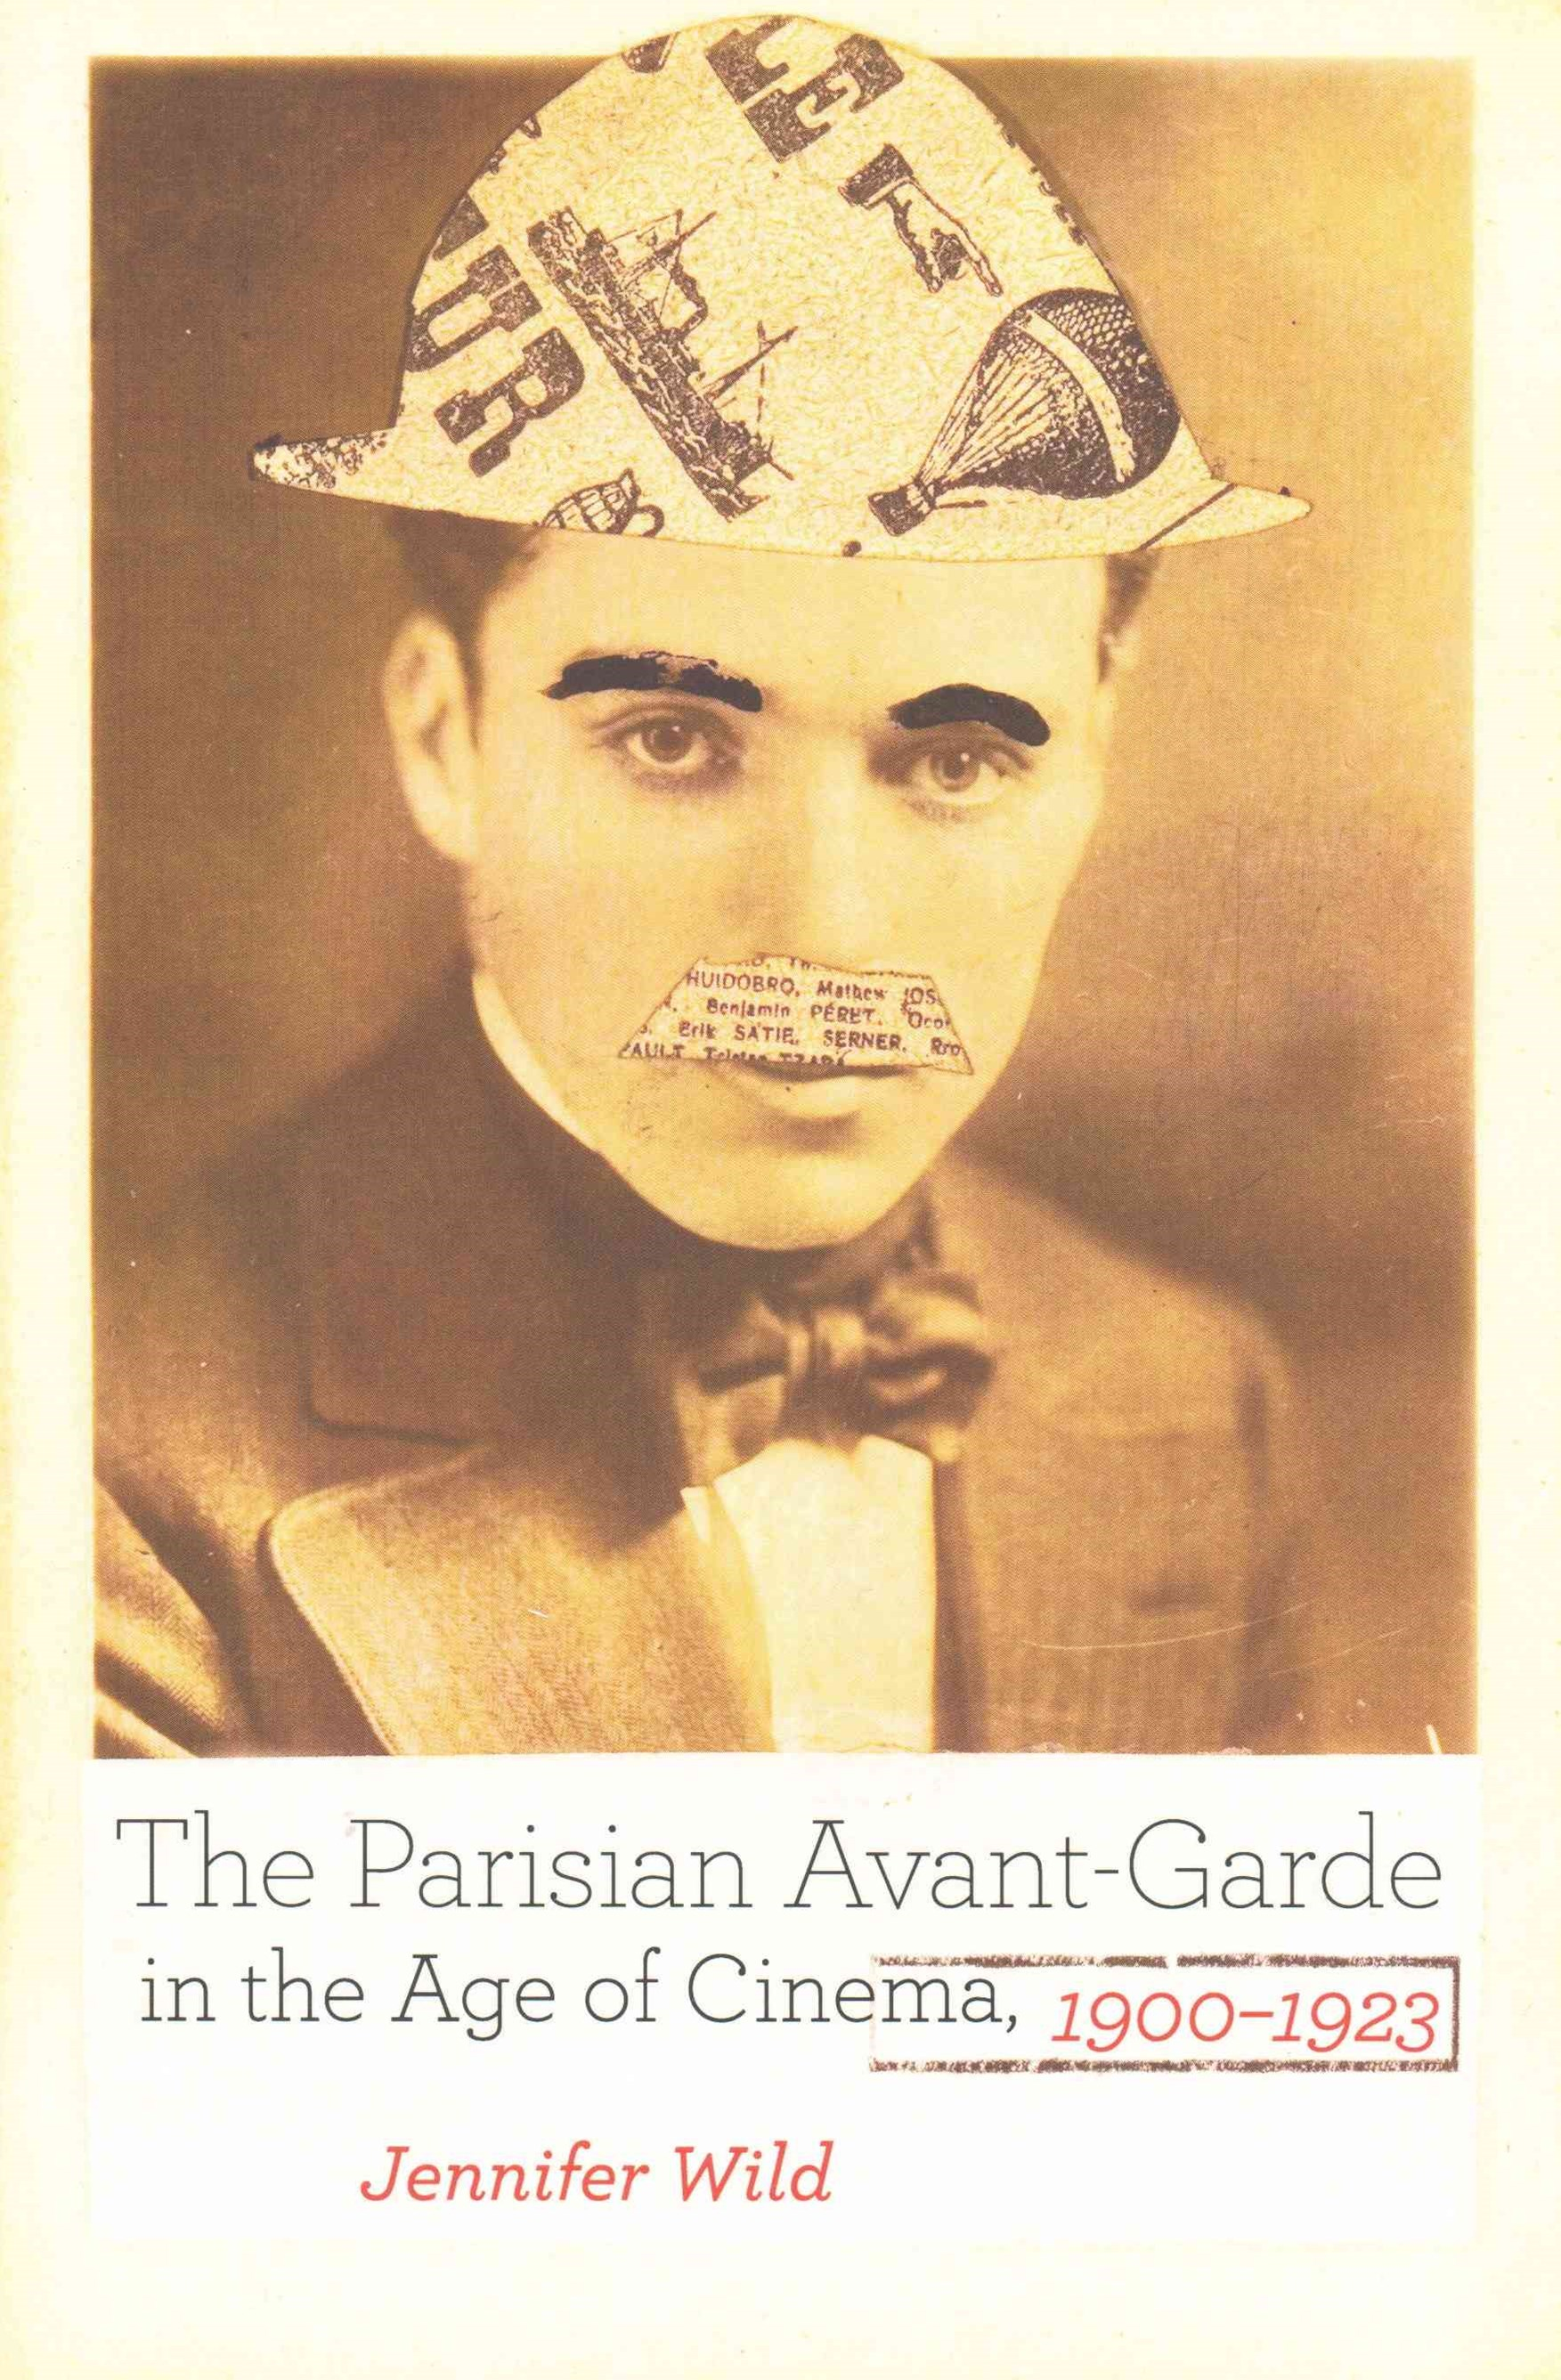 Parisian Avant-Garde in the Age of Cinema, 1900-1923